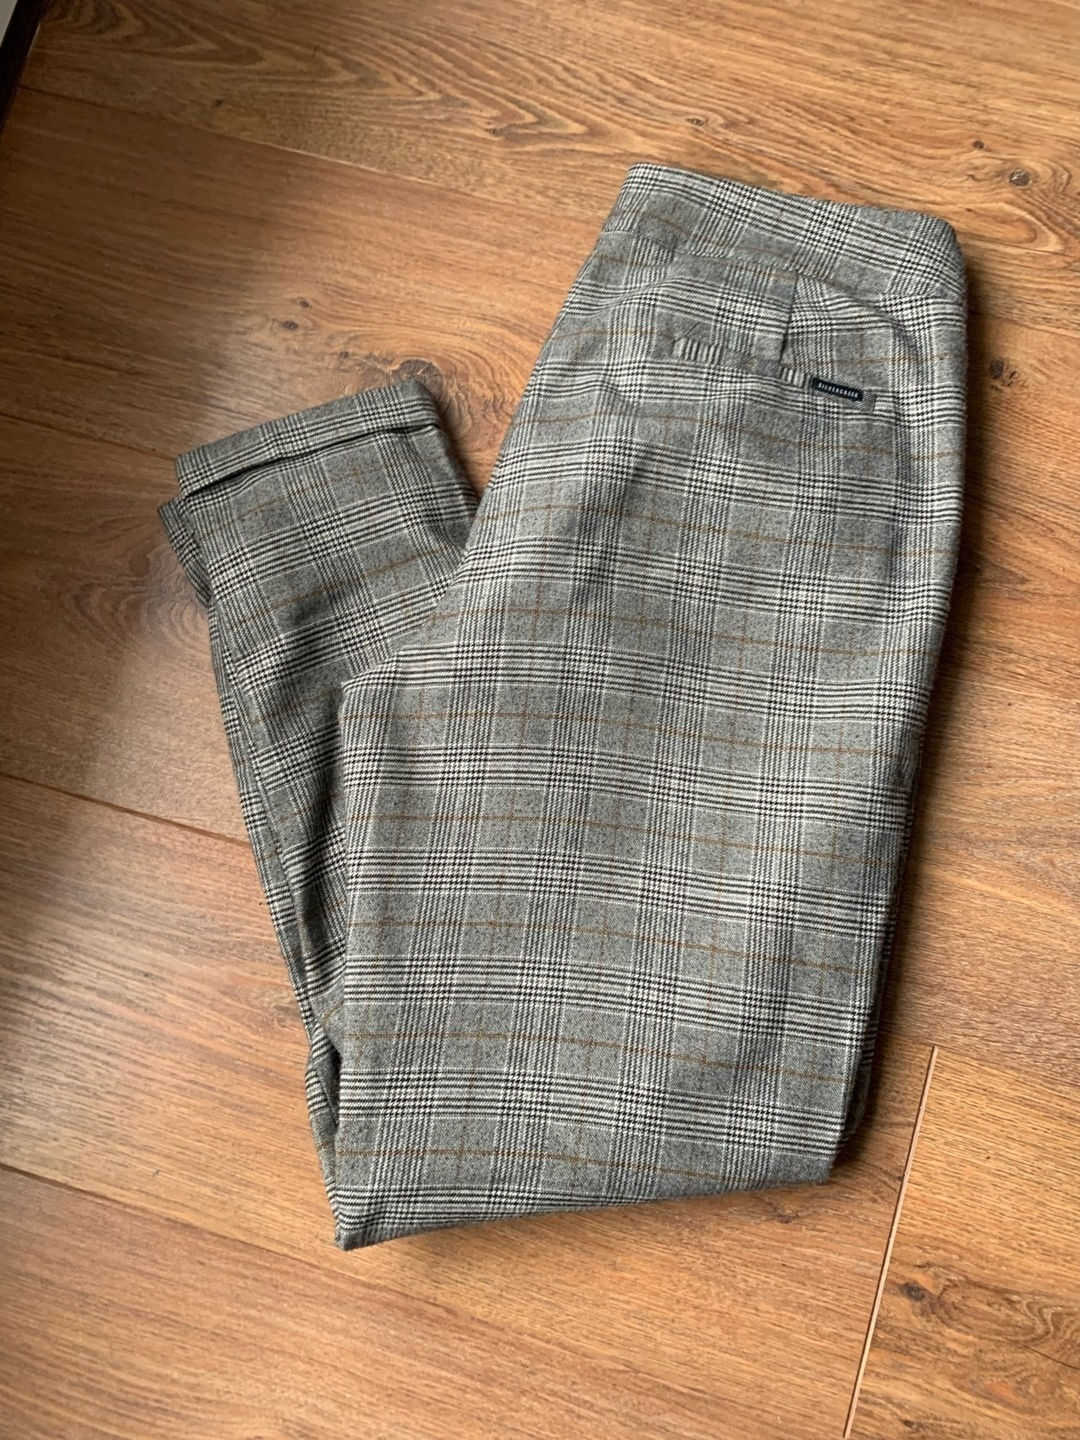 Damen hosen & jeans - SILVERCREEK photo 3